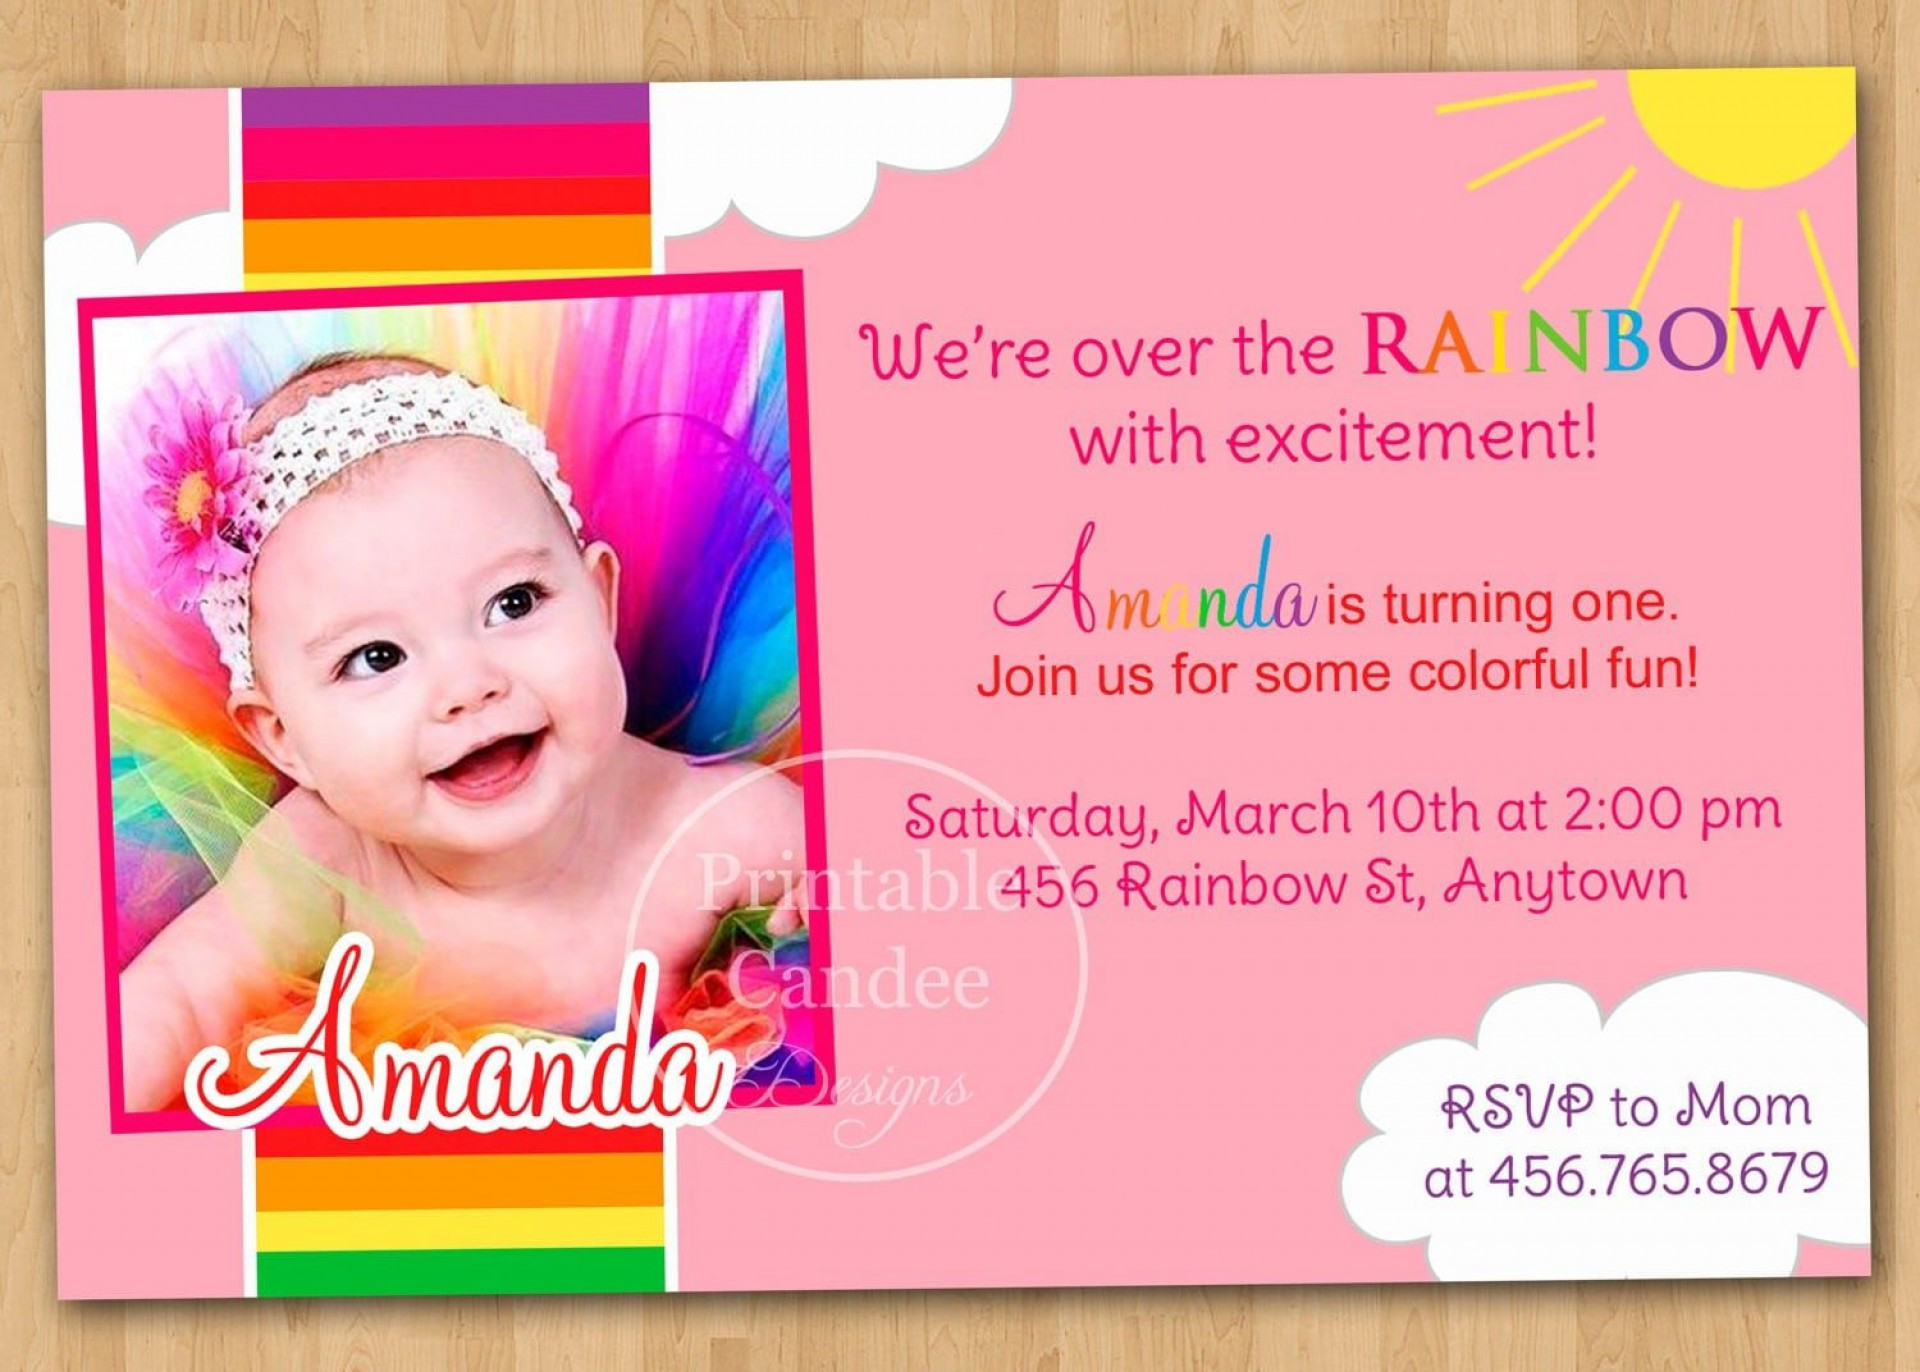 006 Awesome Free 1st Birthday Invitation Template For Word Image 1920